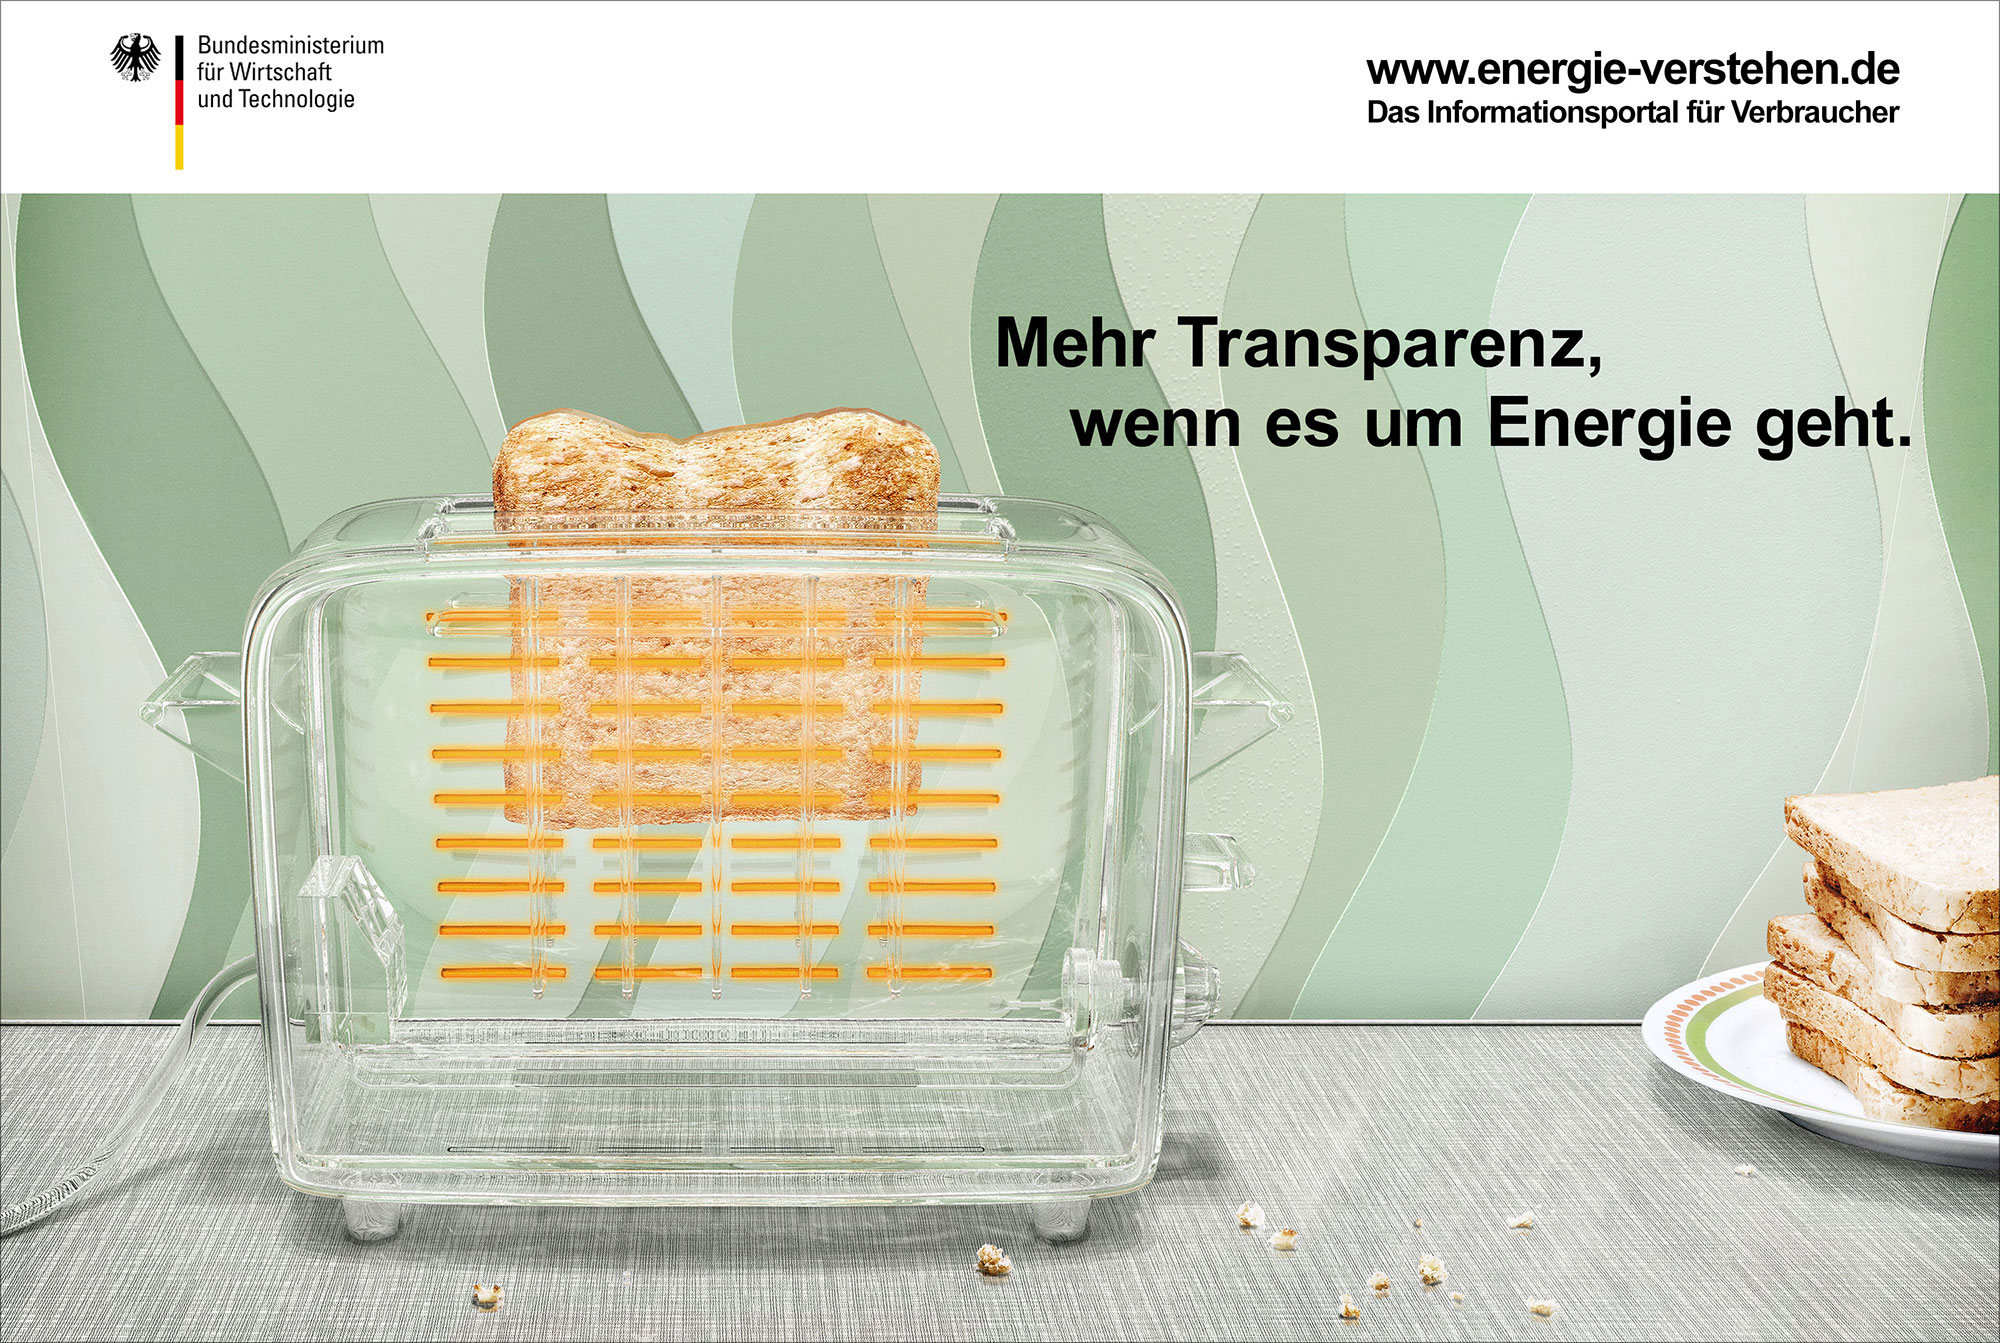 Advertising CGI Rendering 3d BMWI Energie transparent Transparenz Energie Toaster Retro Tapete Idris Kolodziej